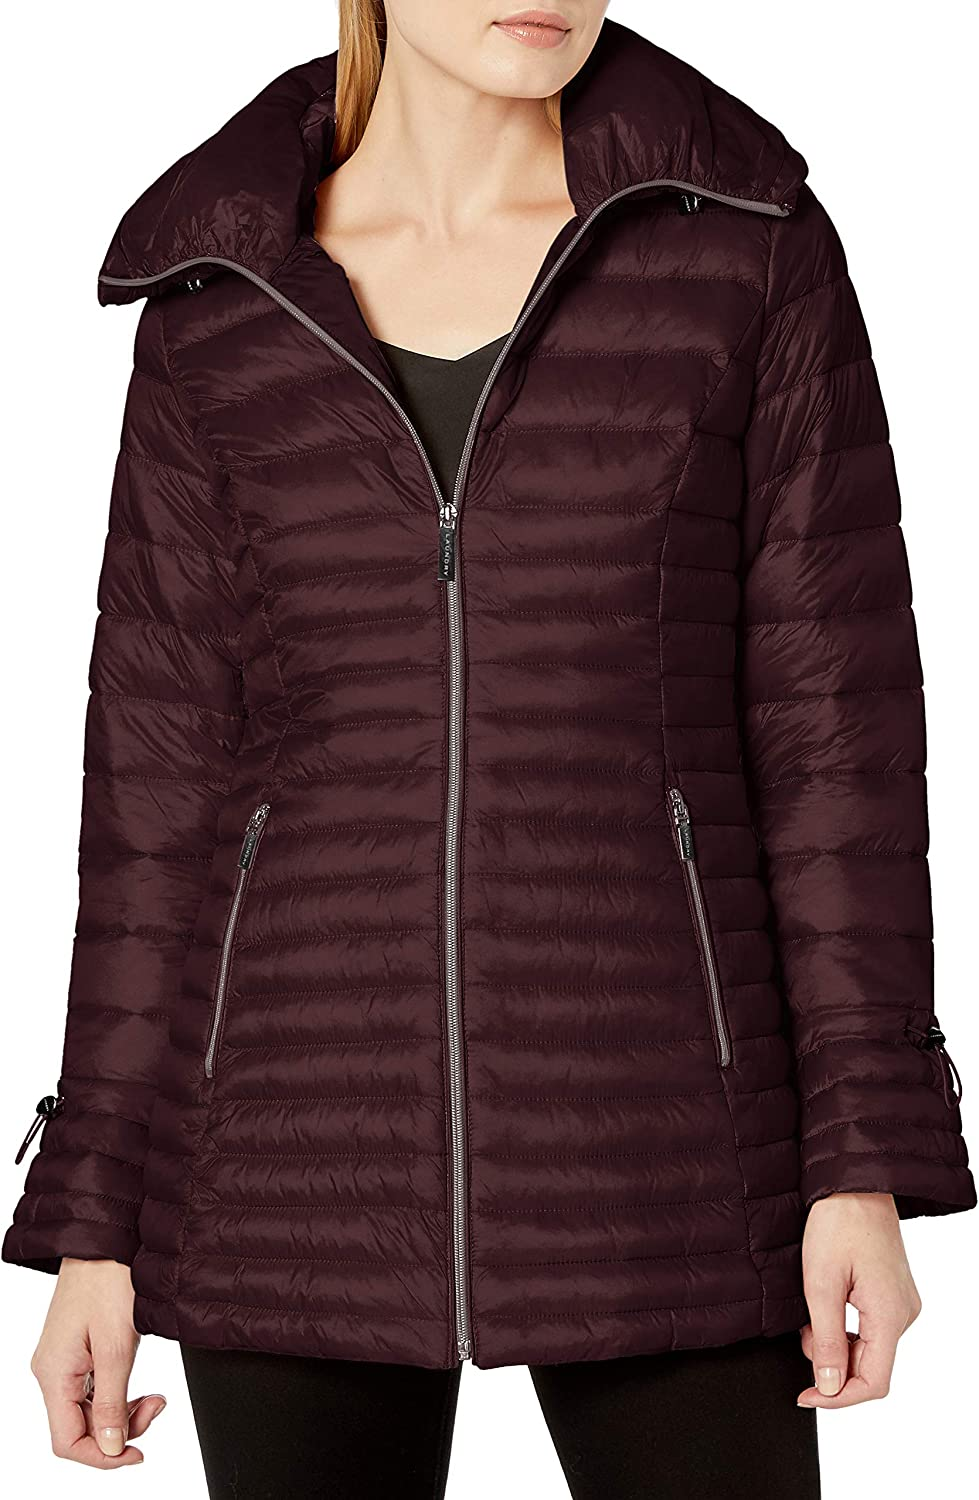 Laundry by Shelli Segal Women's 3/4 Length Lightweight Fit and Flare Puffer Jacket